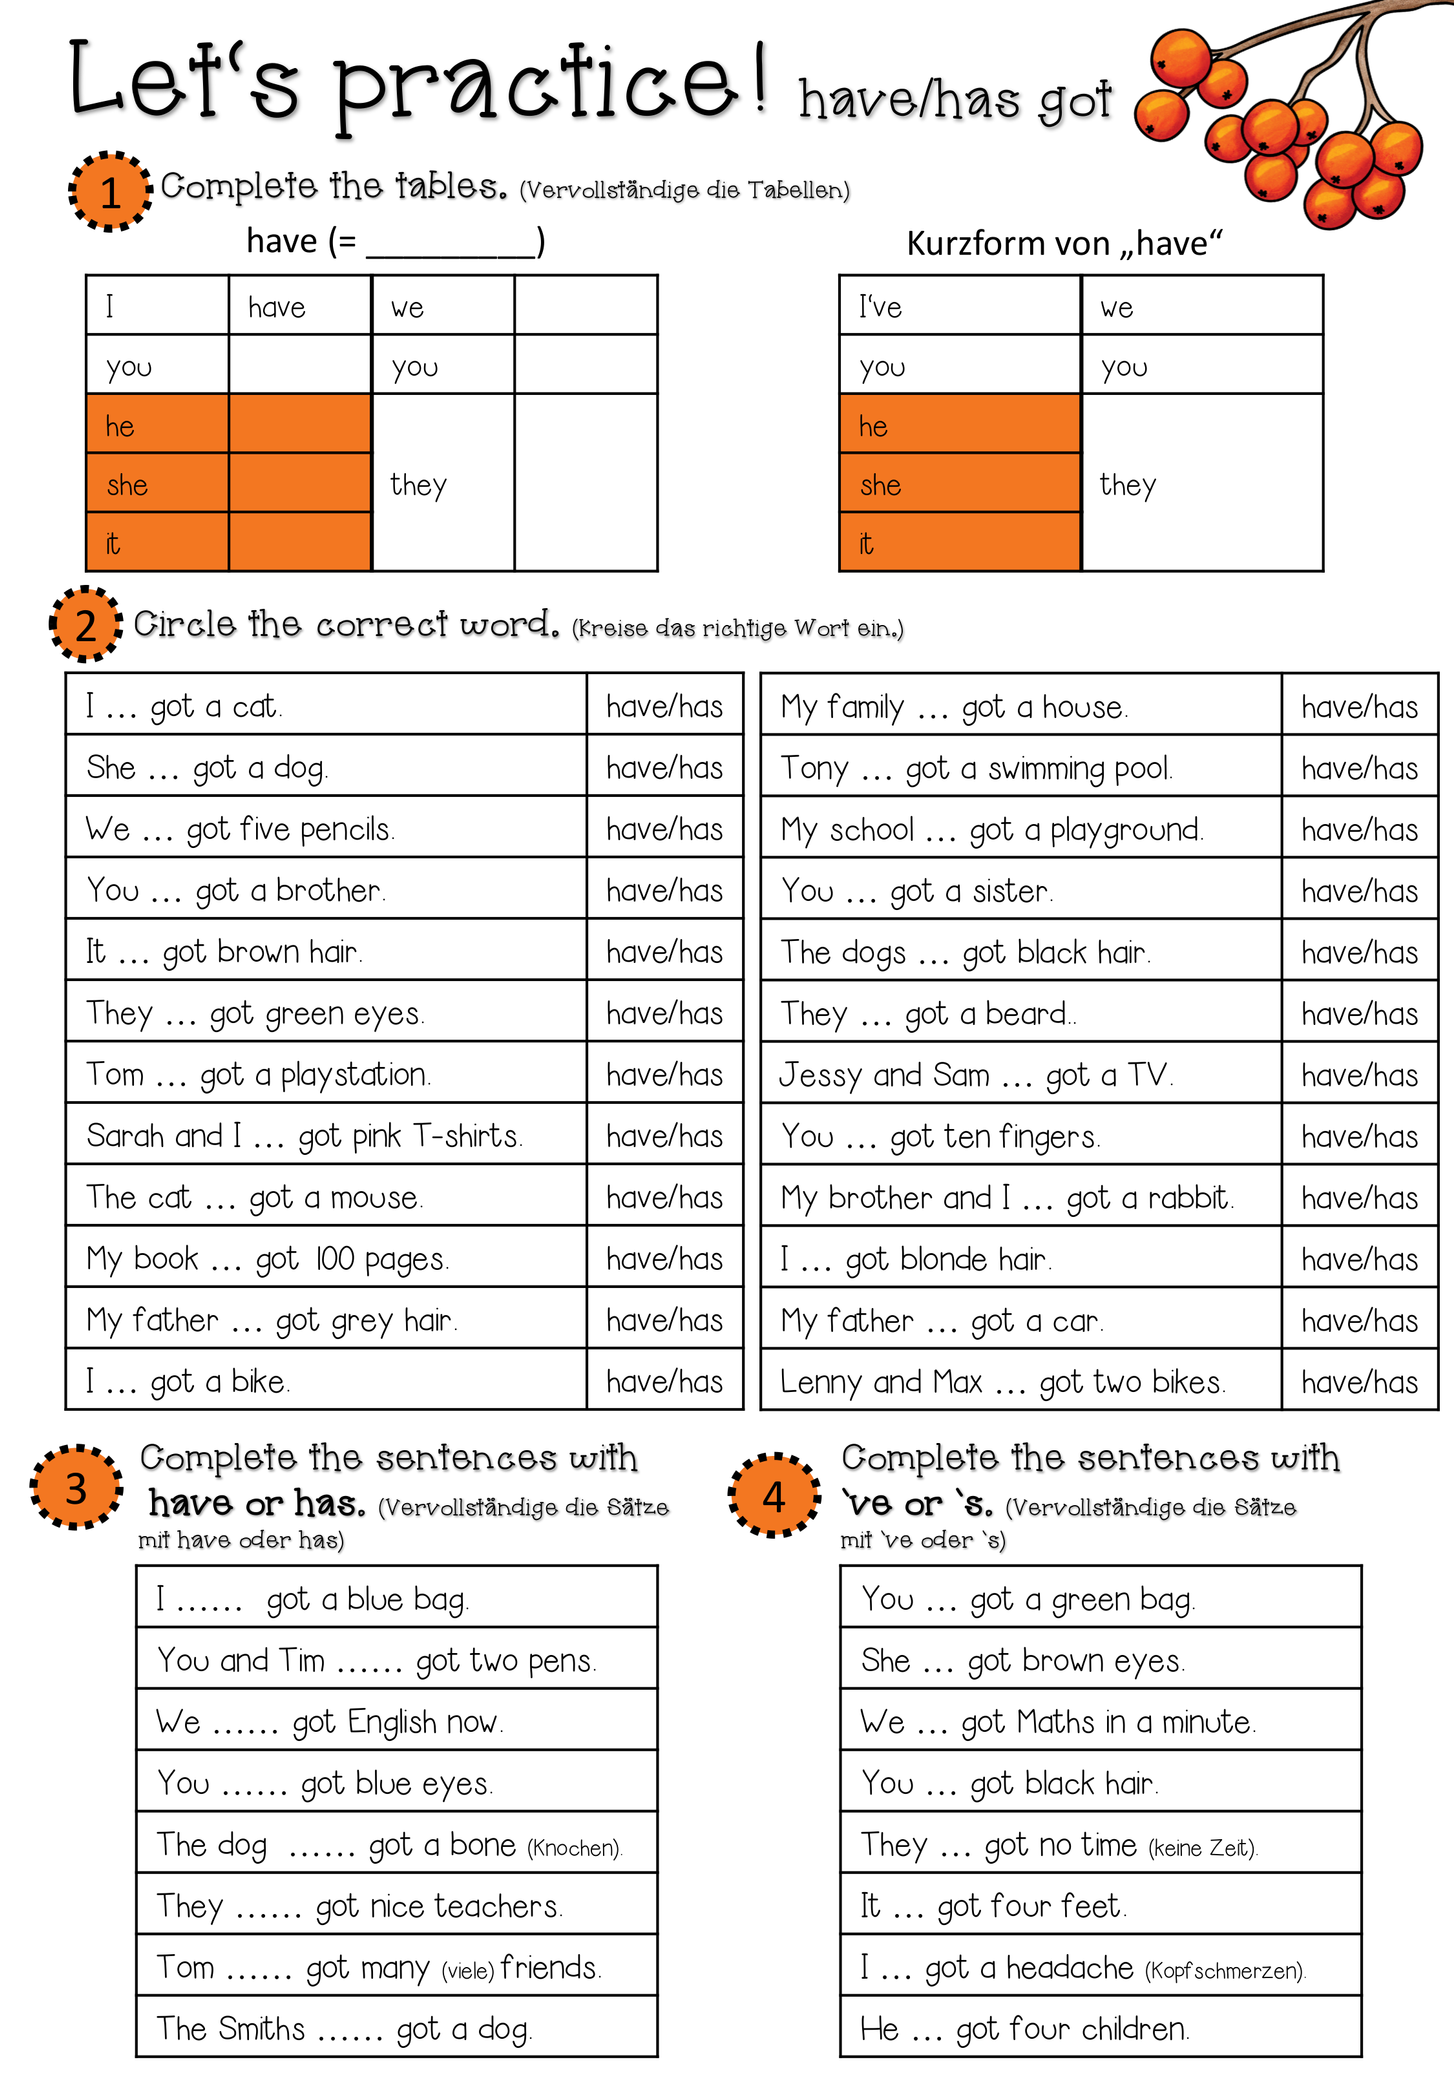 Have Has Got Worksheet Positives And Negatives 2 Seiten